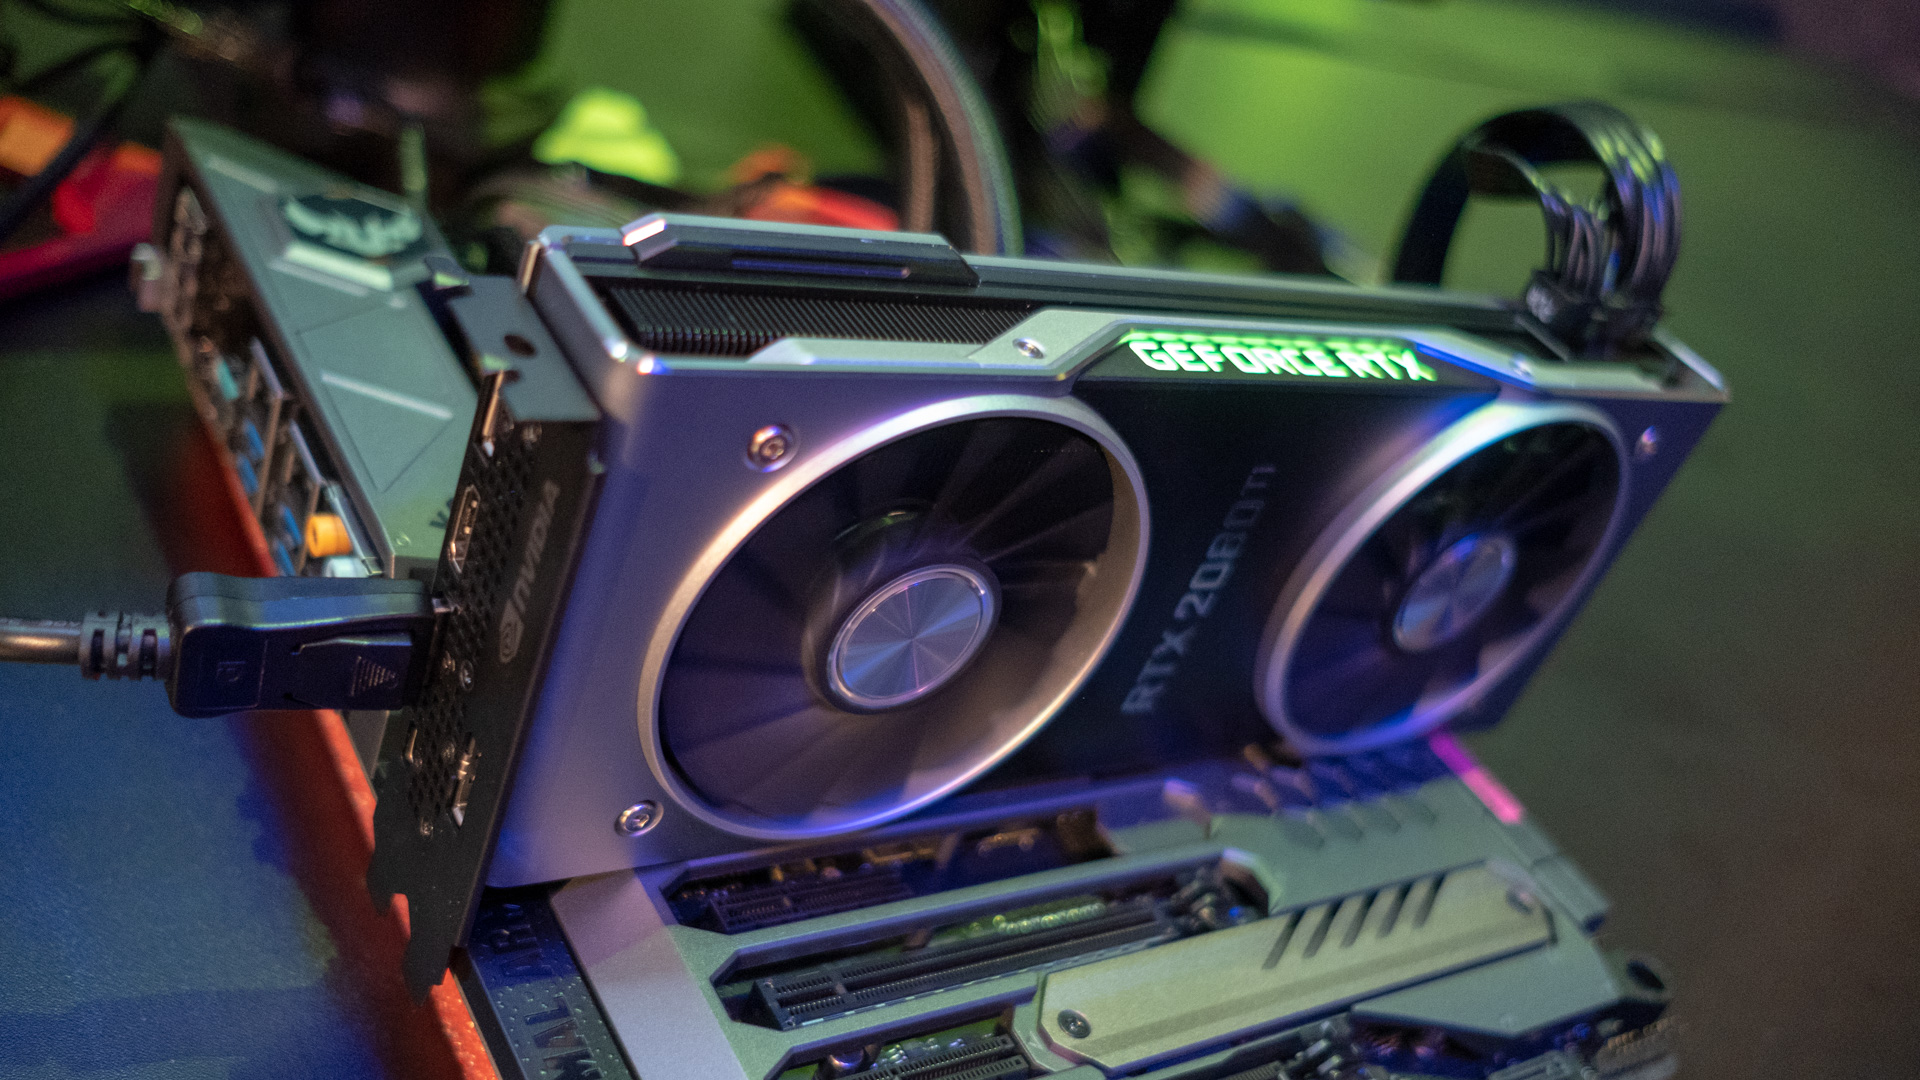 AAFg4tfRctAm5dxZNiWsiN - Nvidia GeForce RTX 2080 Super vs RTX 2080: what has changed?